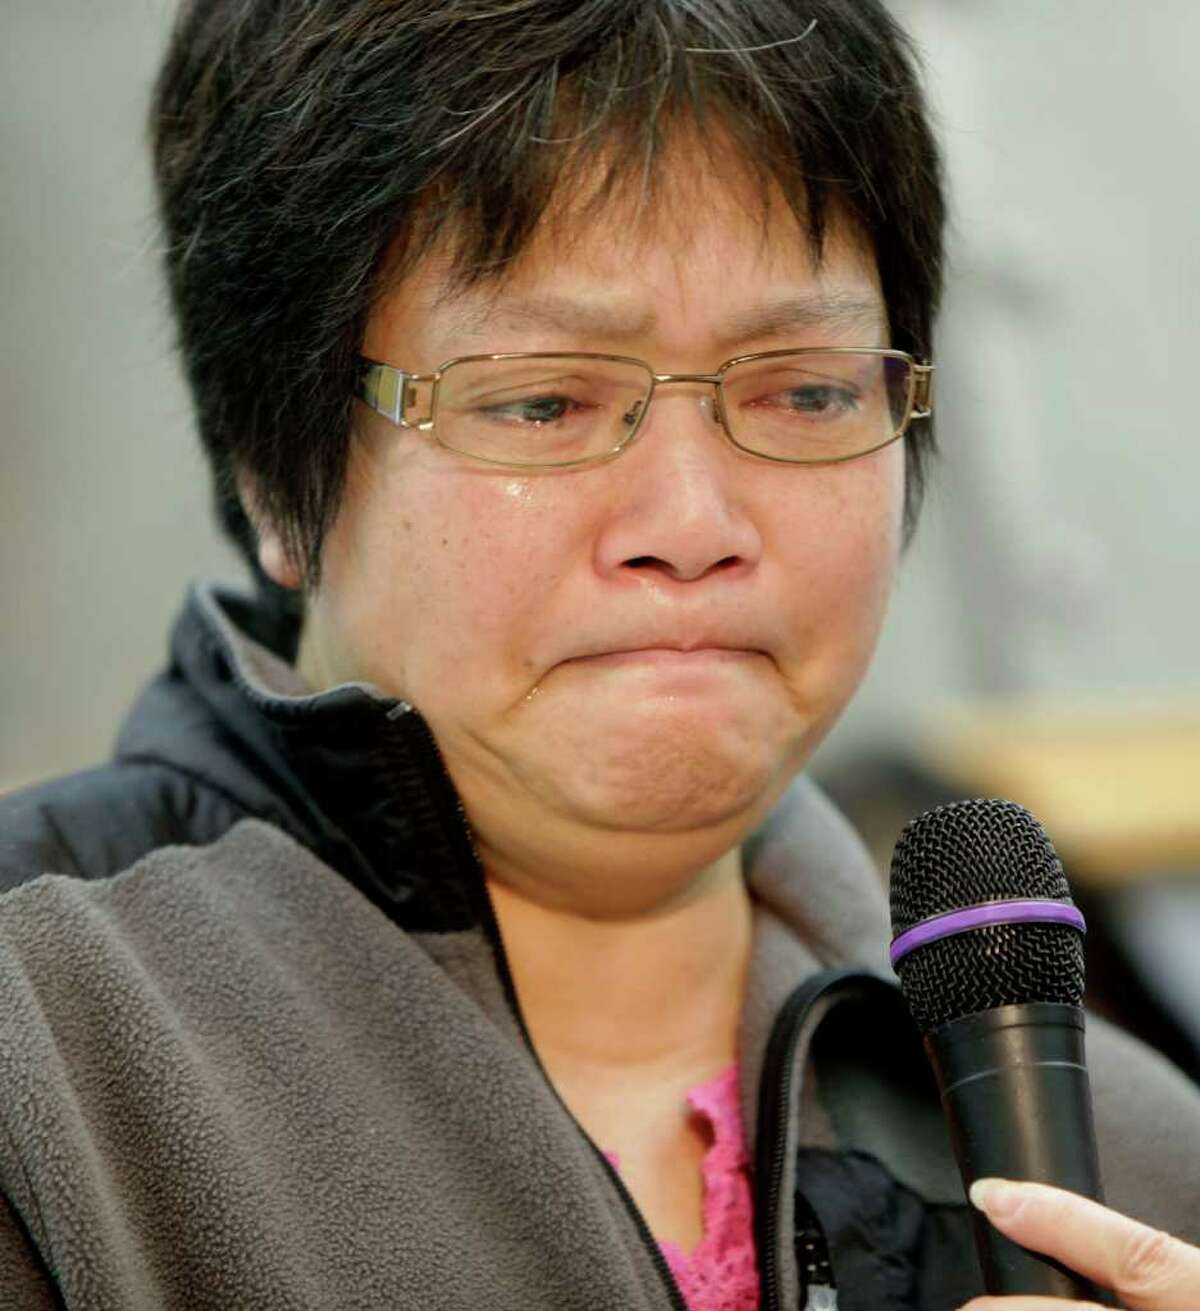 Su Zhen Chen, mother of Pvt. Danny Chen, weeps while speaking during a news conference in New York. Pvt. Chen was found on Oct. 3 in a guard tower in the Kandahar province of Afghanistan with what the Army has described as